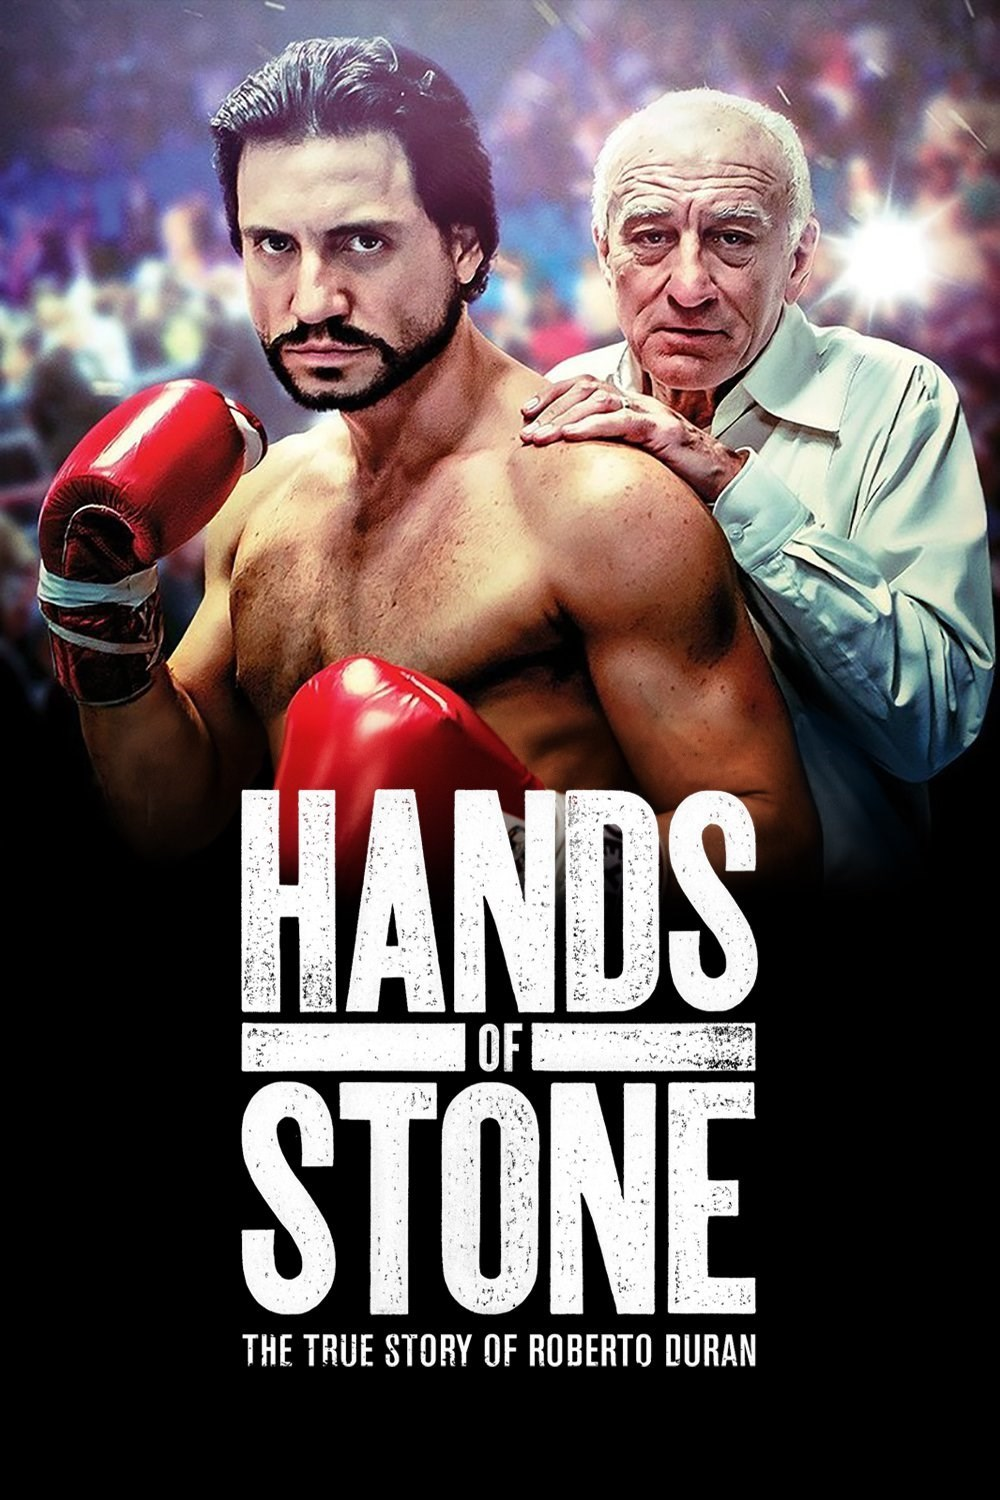 hands-of-stone-59390